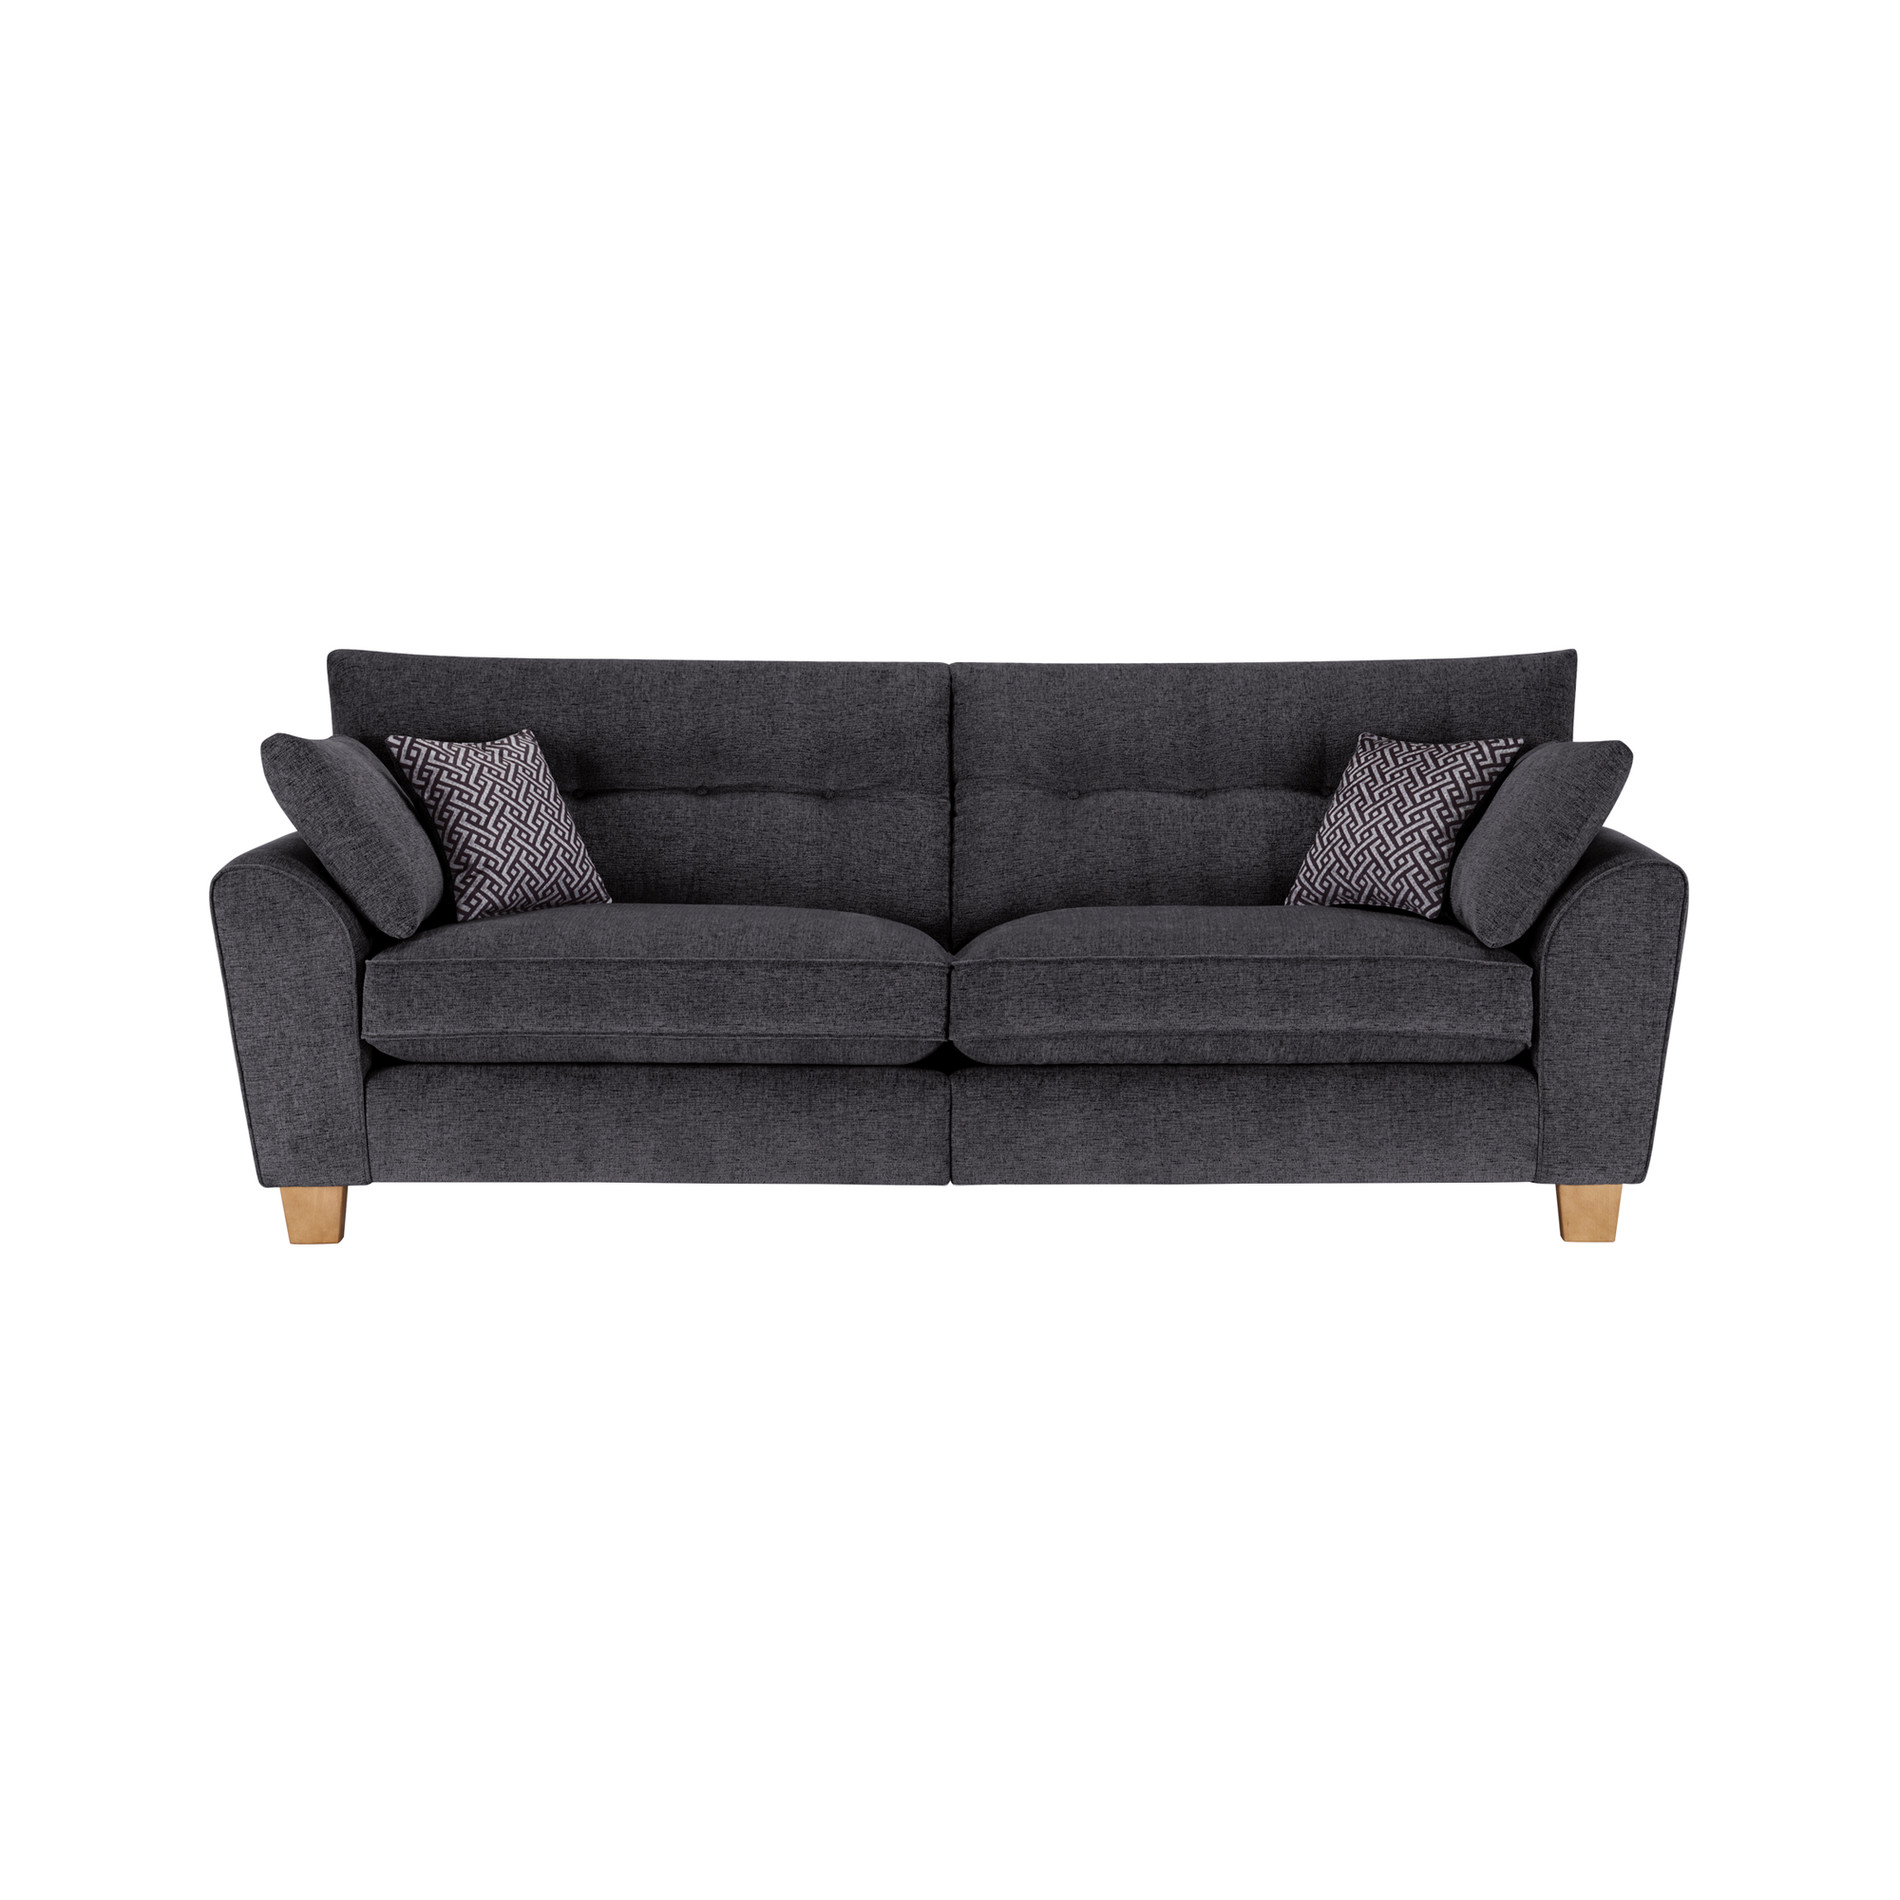 Brooke 2 Seater Sofa in Charcoal Grey Scatters